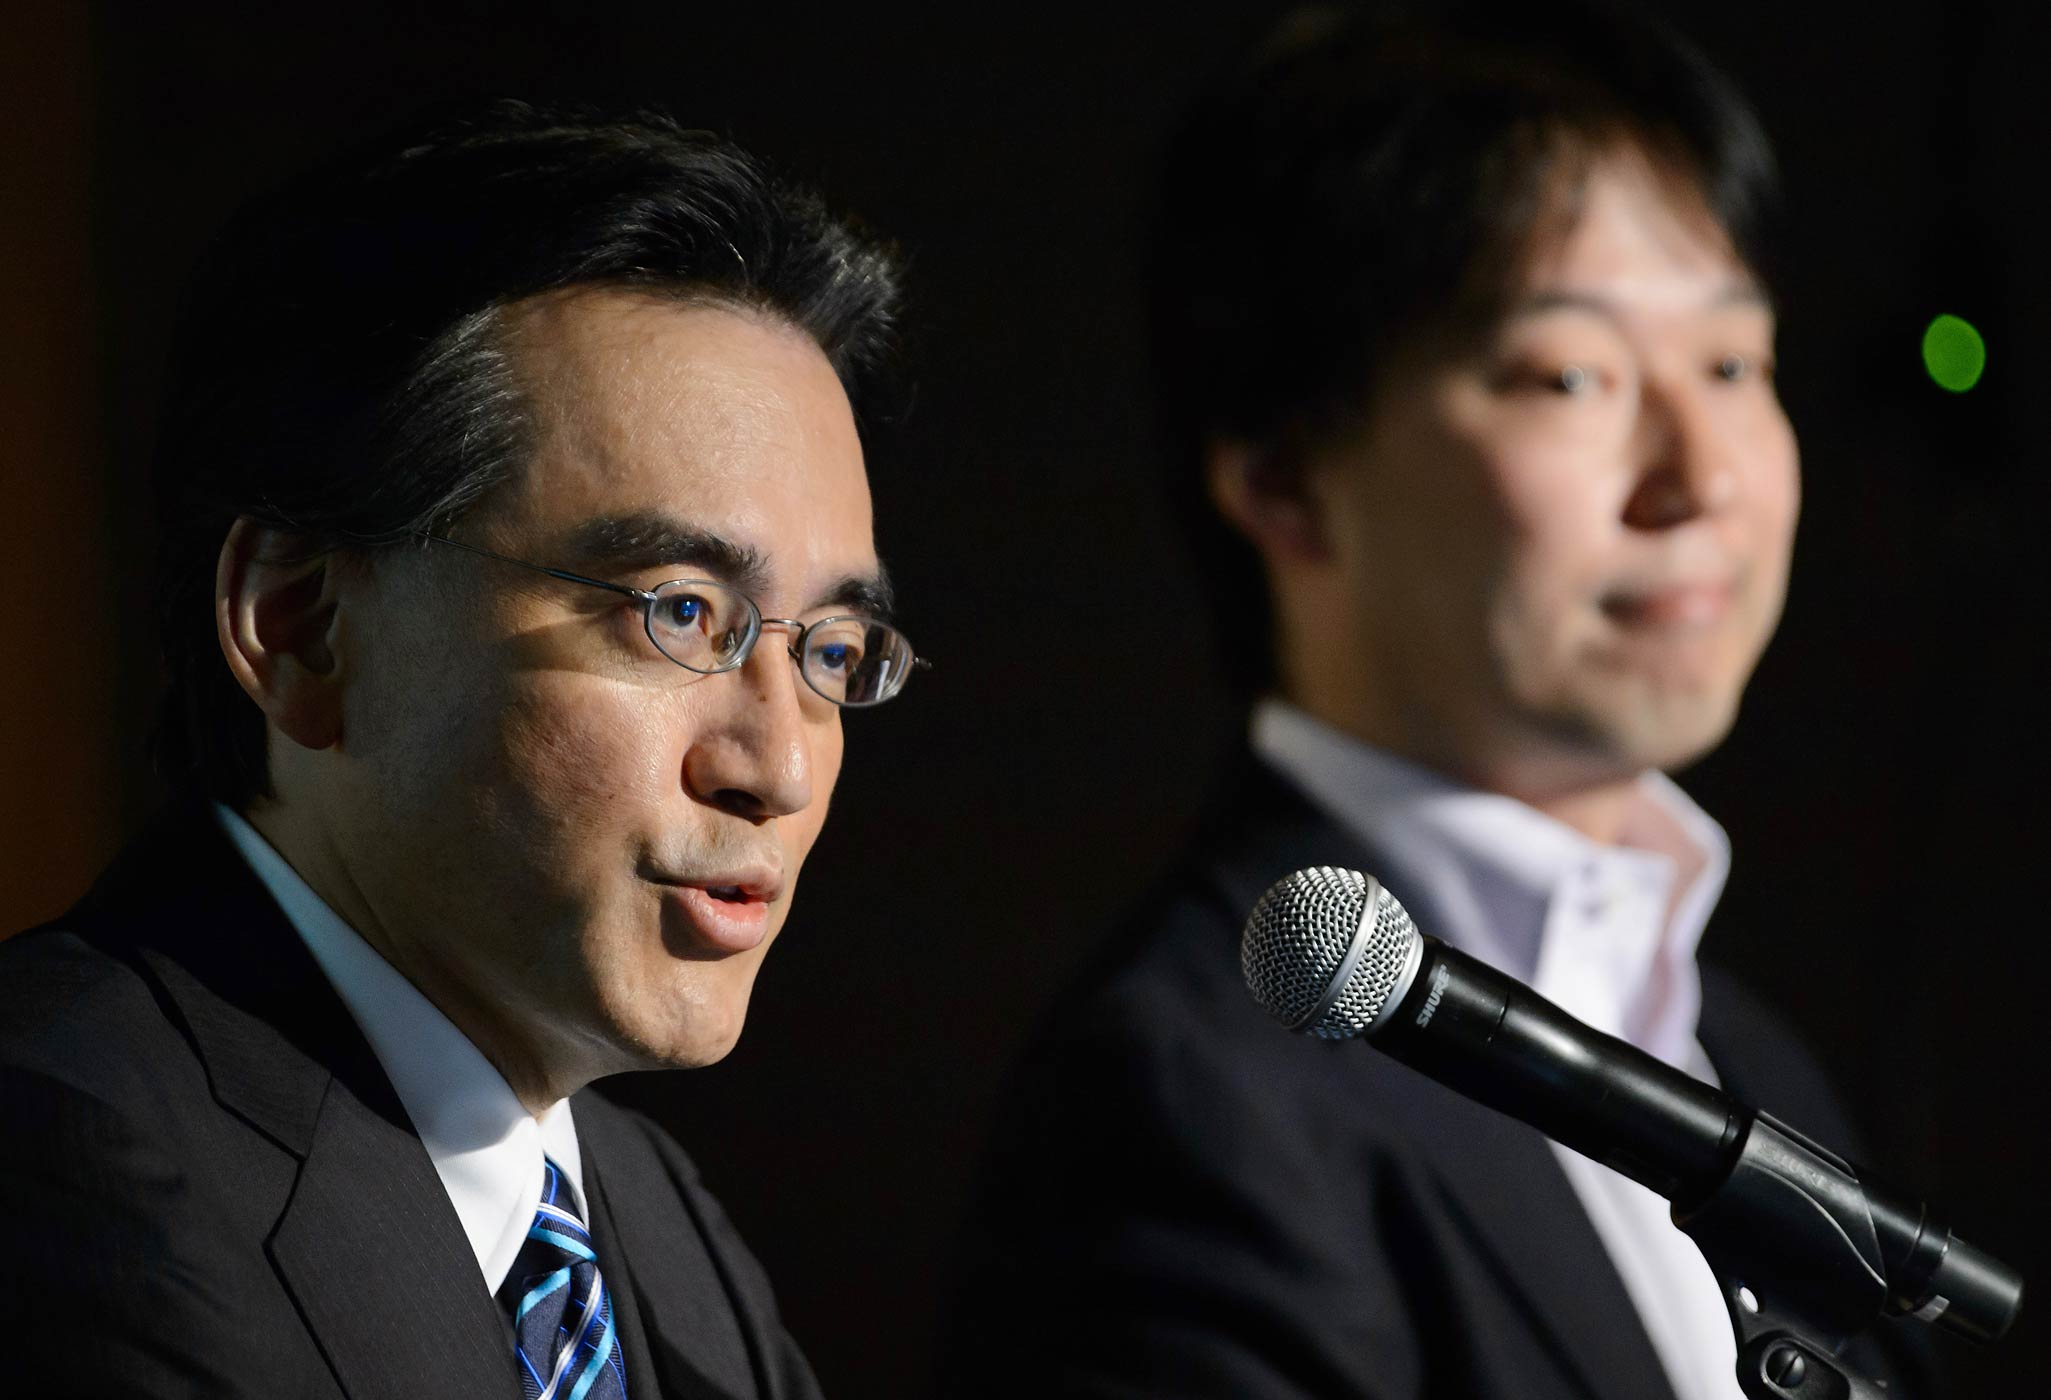 Nintendo President and CEO Satoru Iwata, left, speaks while DeNA Co. President and CEO Isao Moriyasu listens during a joint news conference in Tokyo, Japan, on March 17, 2015.